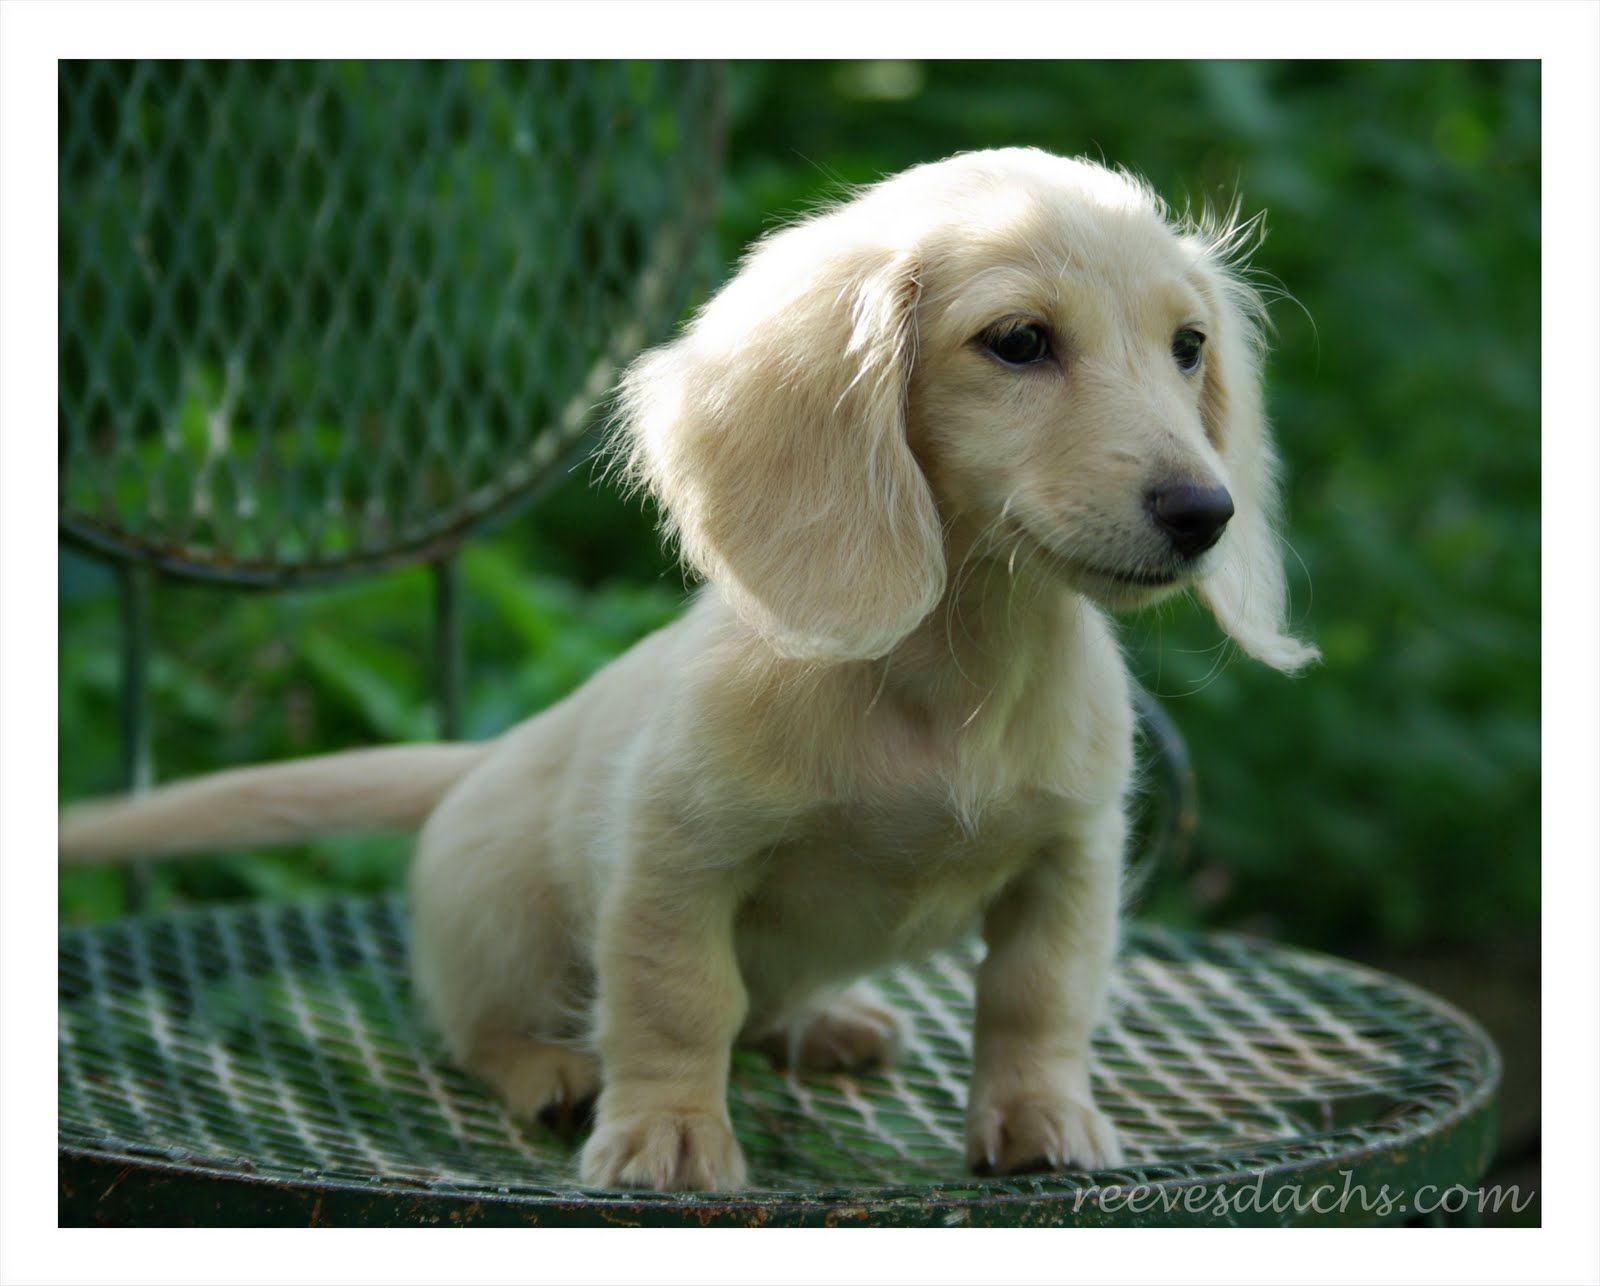 Breeder Of True To Size Miniature Dachshund Puppies Diamond Doxies Specializes In Smooth And Long Dachshund Puppies Dachshund Puppy Miniature Dachshund Breed